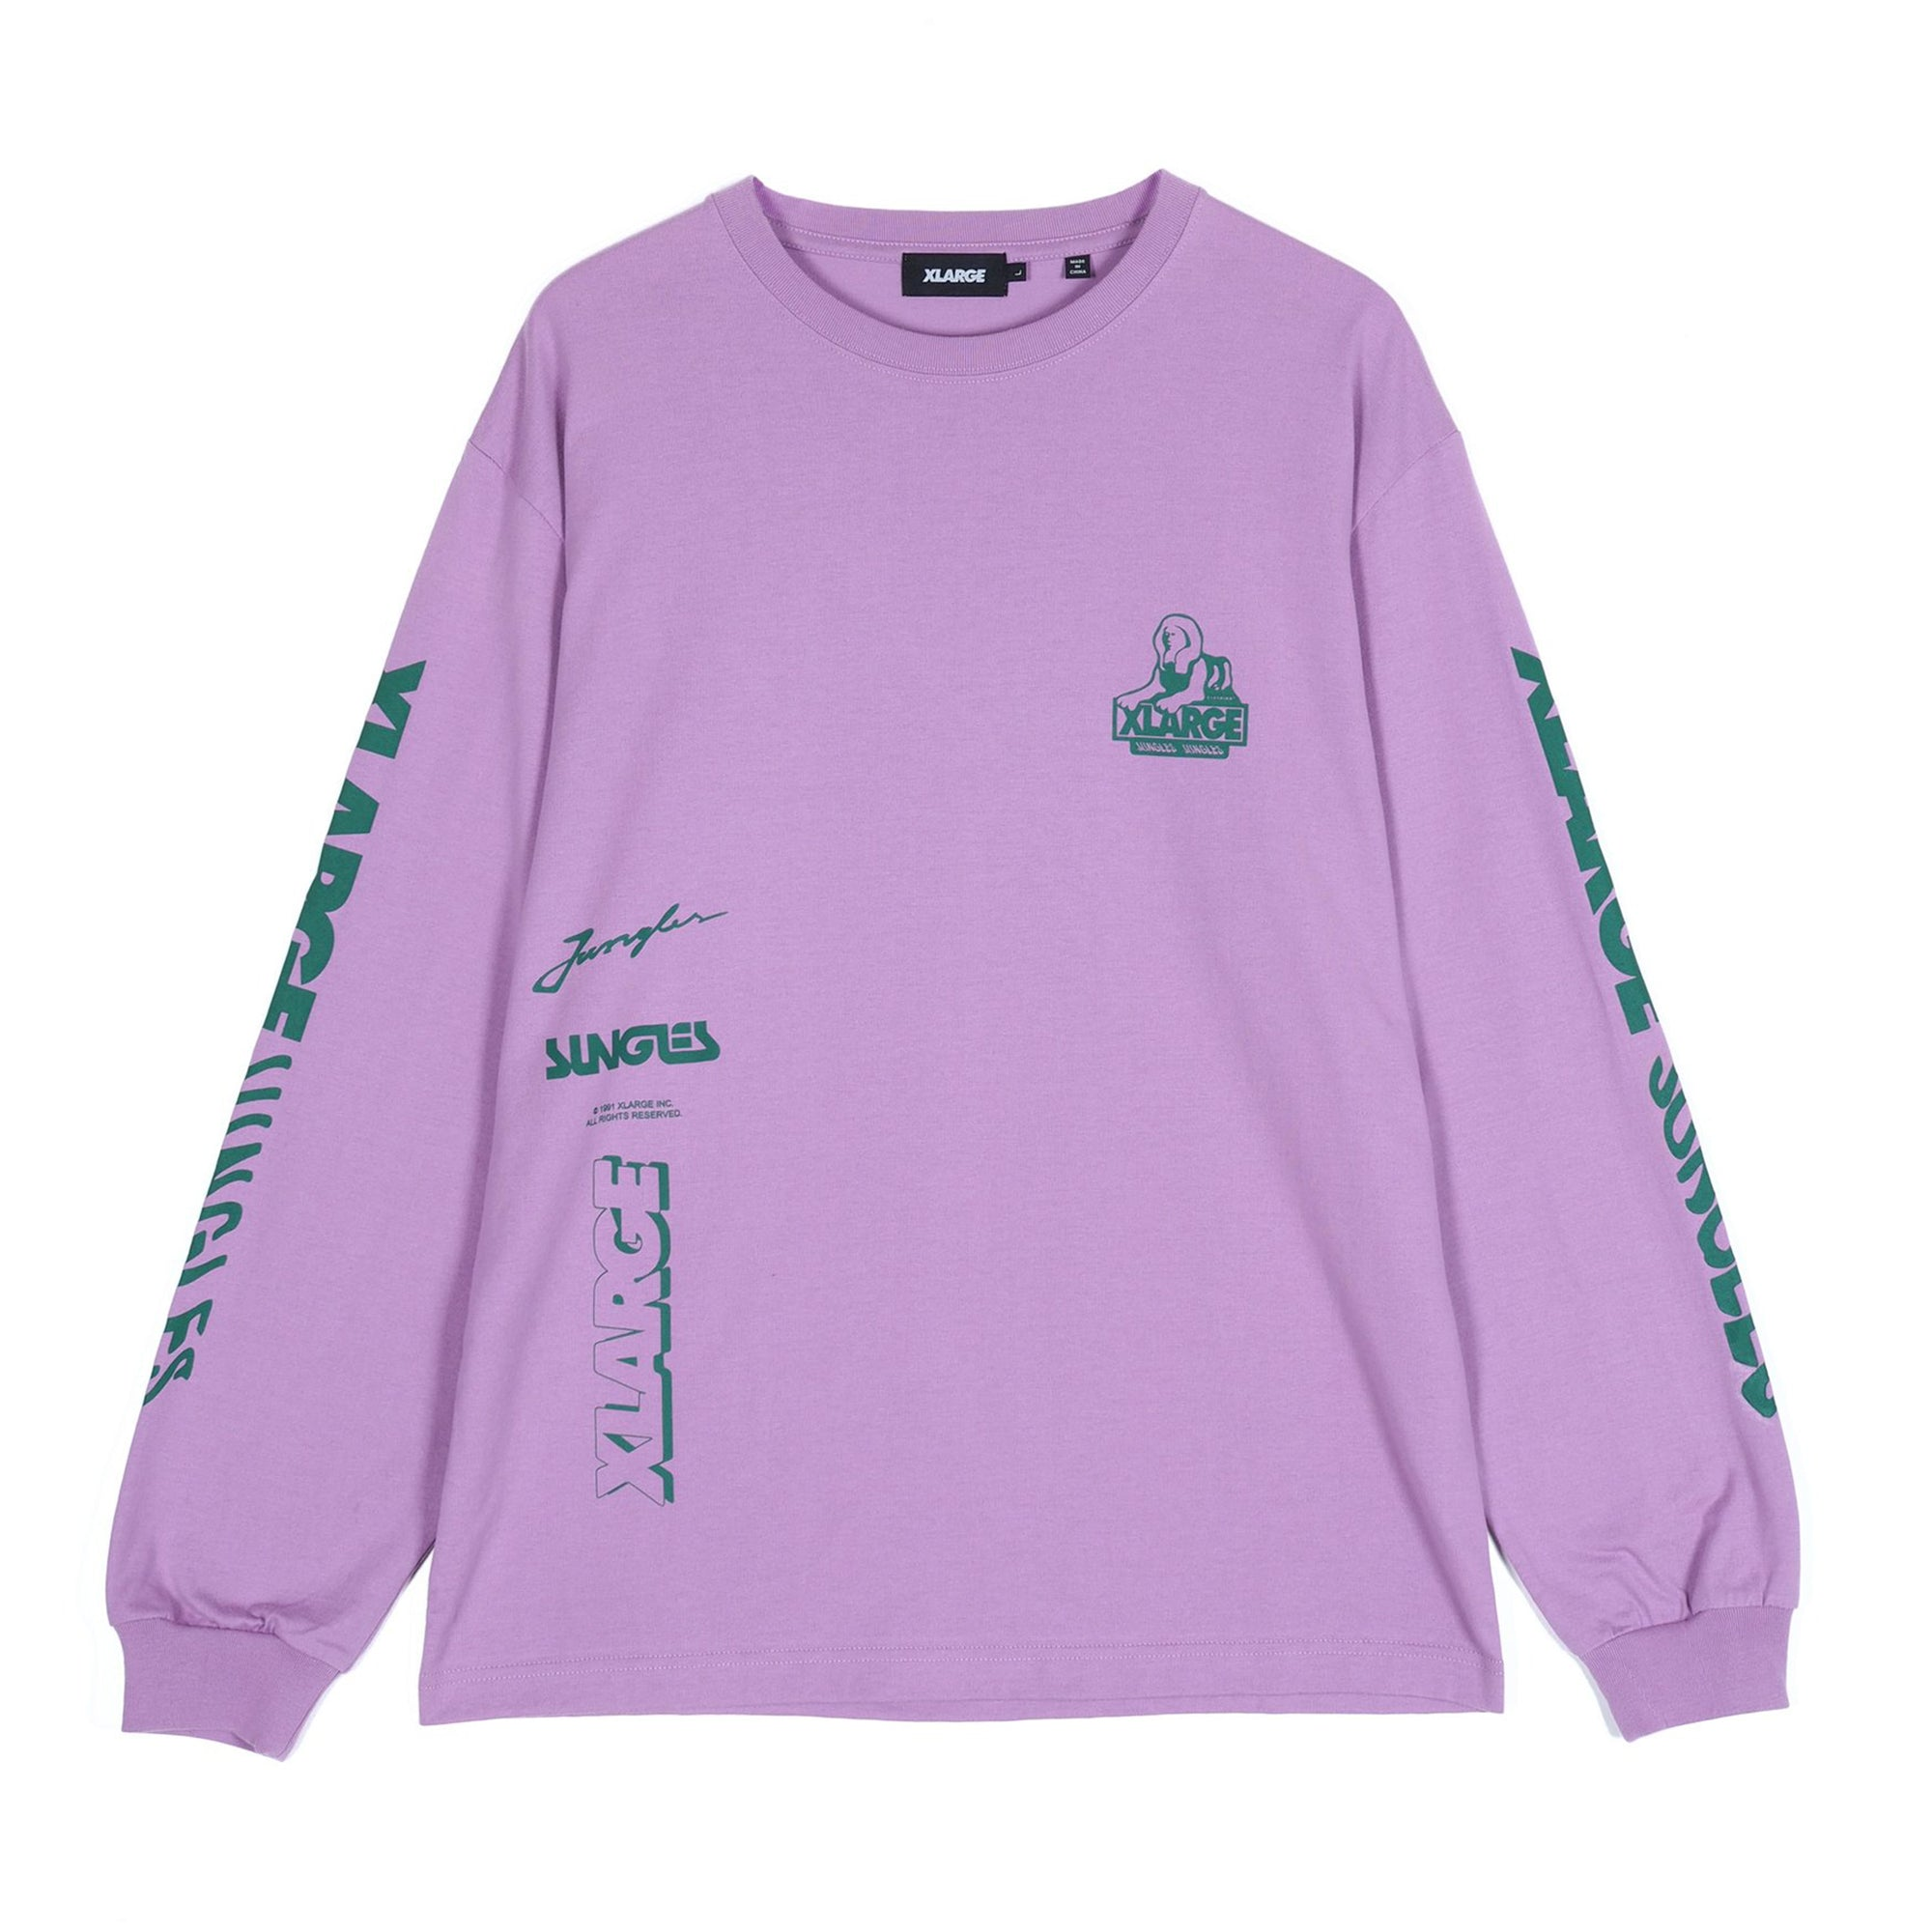 Jungles Jungles Long Sleeve OG Sphinx Logo: Purple - The Union Project